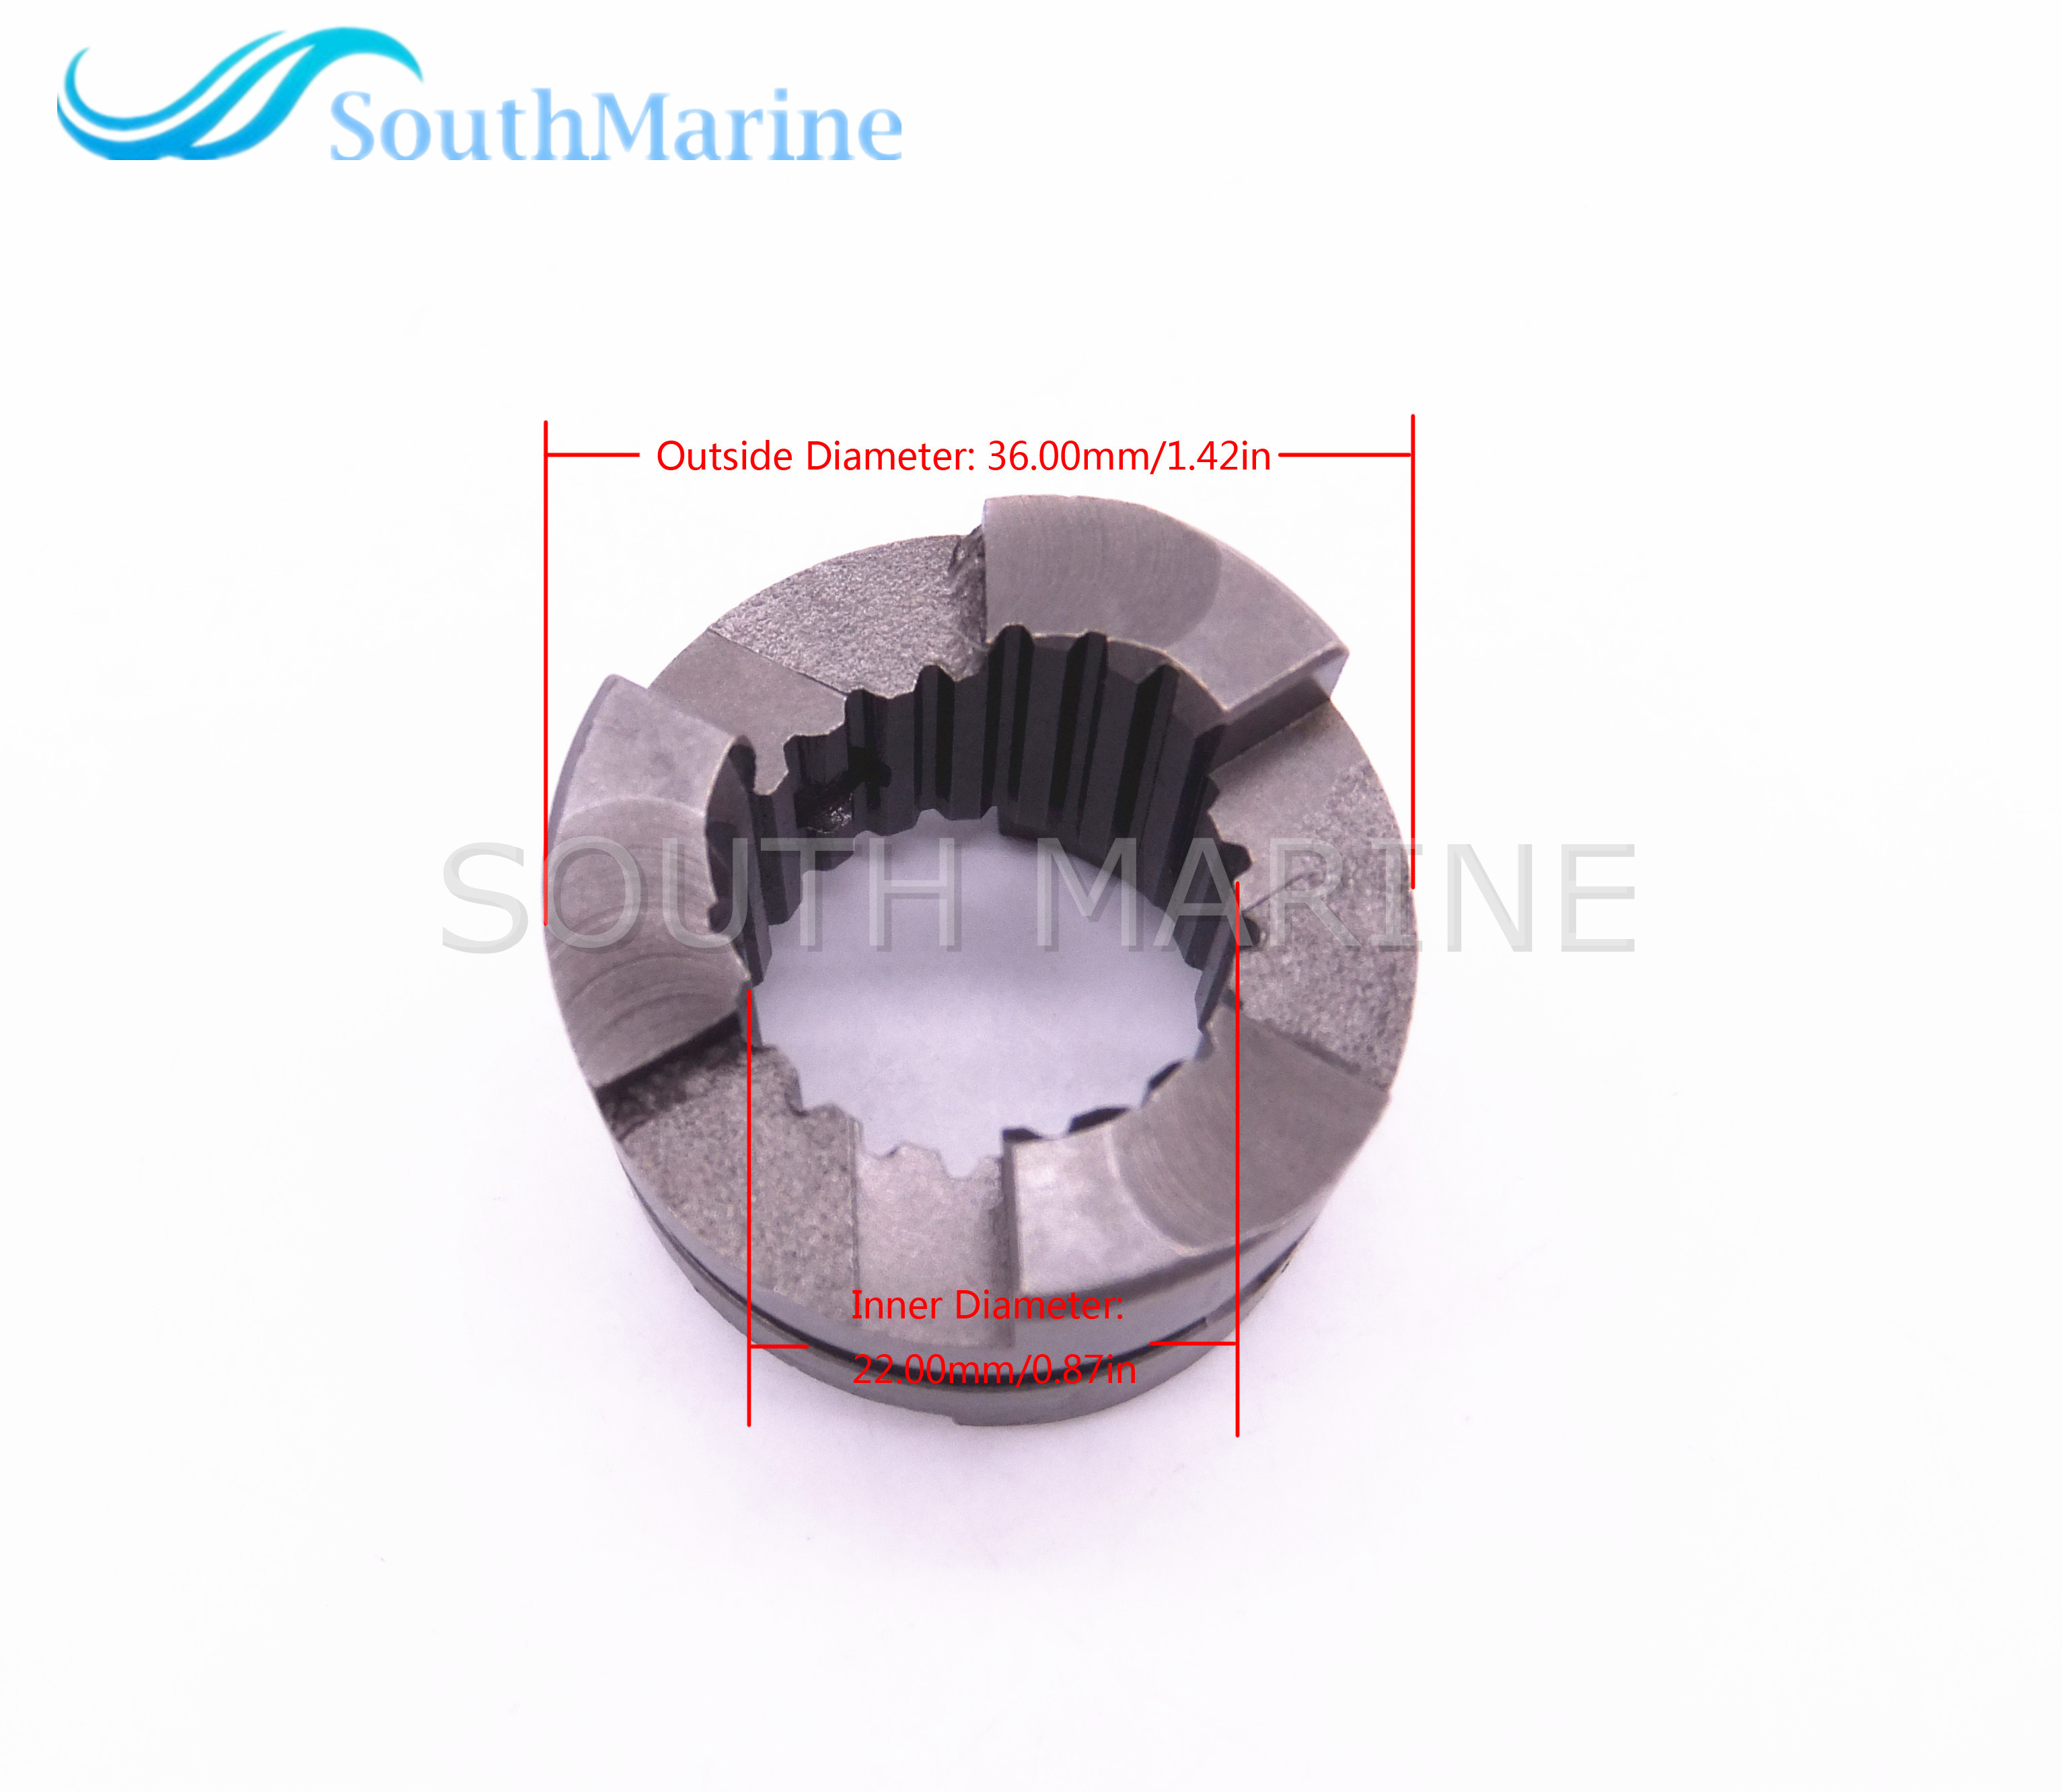 664 45631 02 Clutch Dog for Yamaha Outboard Engine F25 Boat Motor-in Boat  Engine from Automobiles & Motorcycles on Aliexpress.com | Alibaba Group